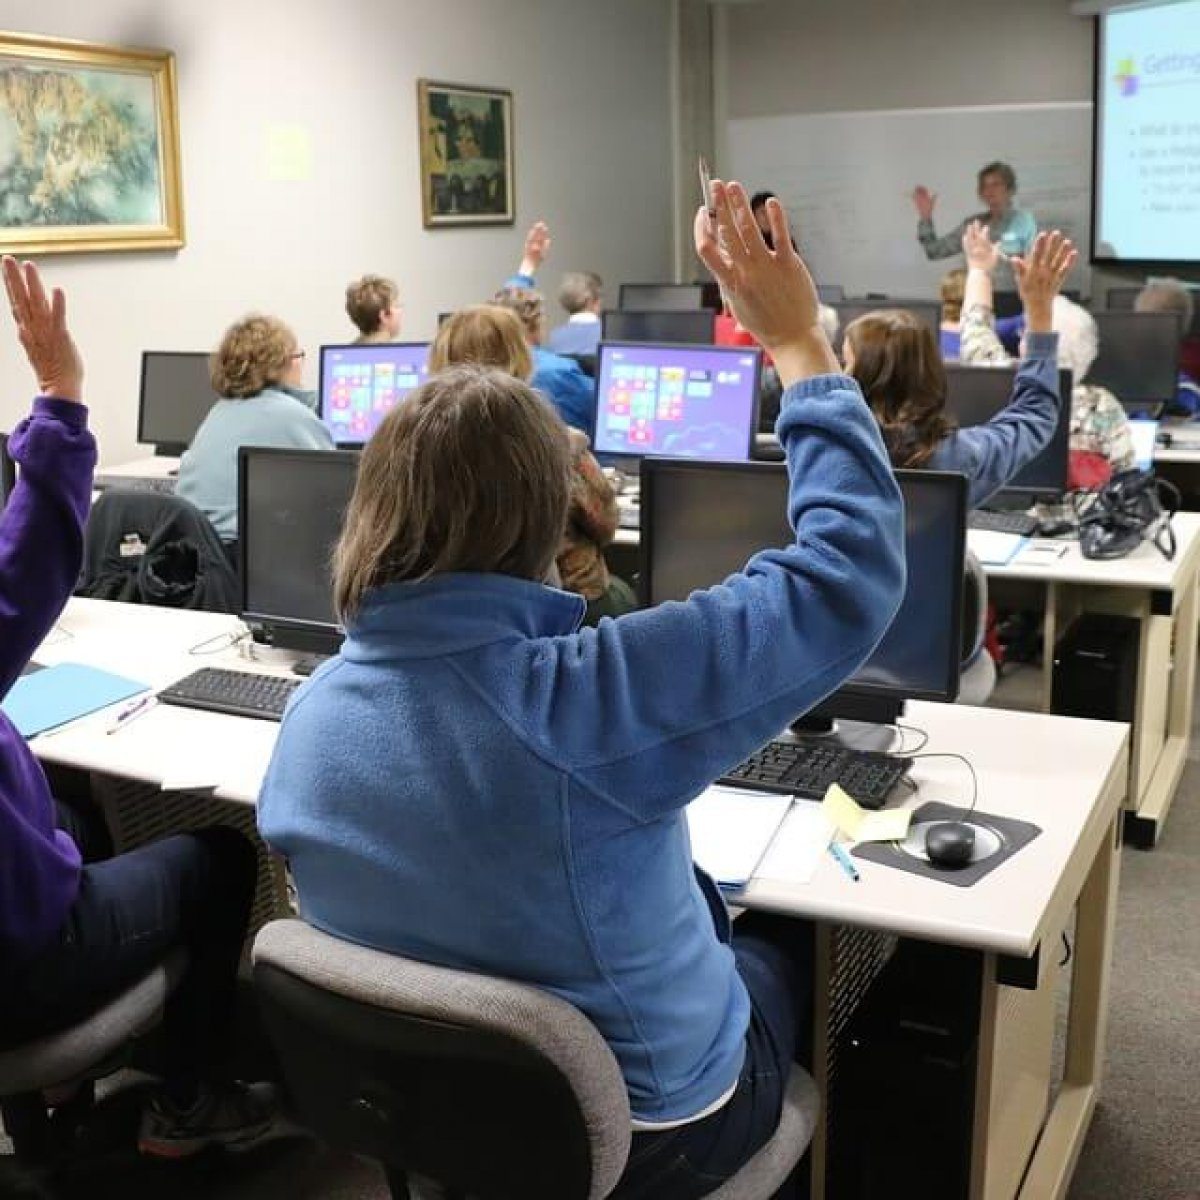 A photo of adult students seated at desks raising their hands